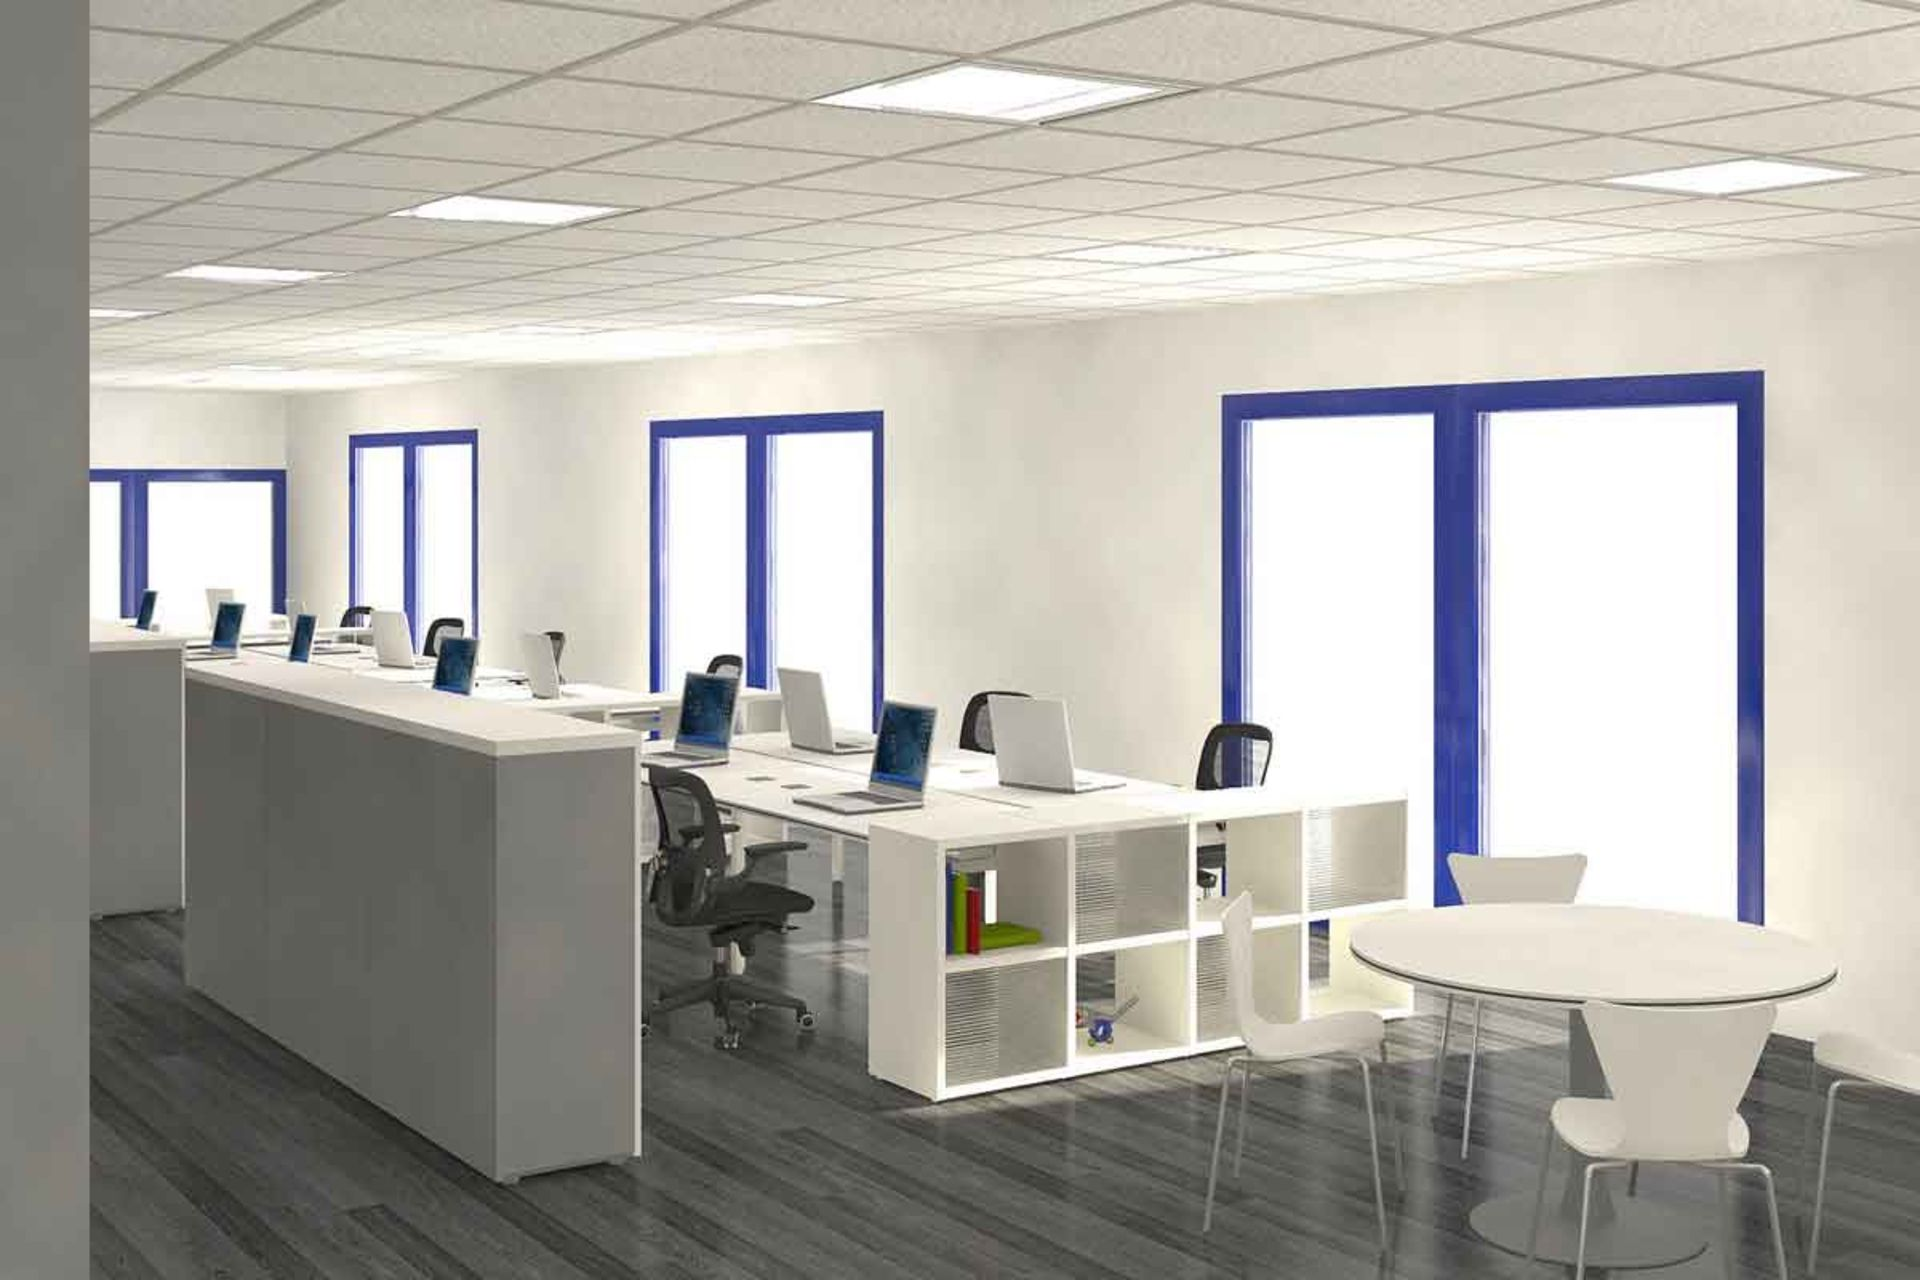 Office Space Design Ideas elegant home offices creative office space modern office space Office Workspace Open Space Modern Office Interior Office Amazing Office Space Design Ideas Interior Design